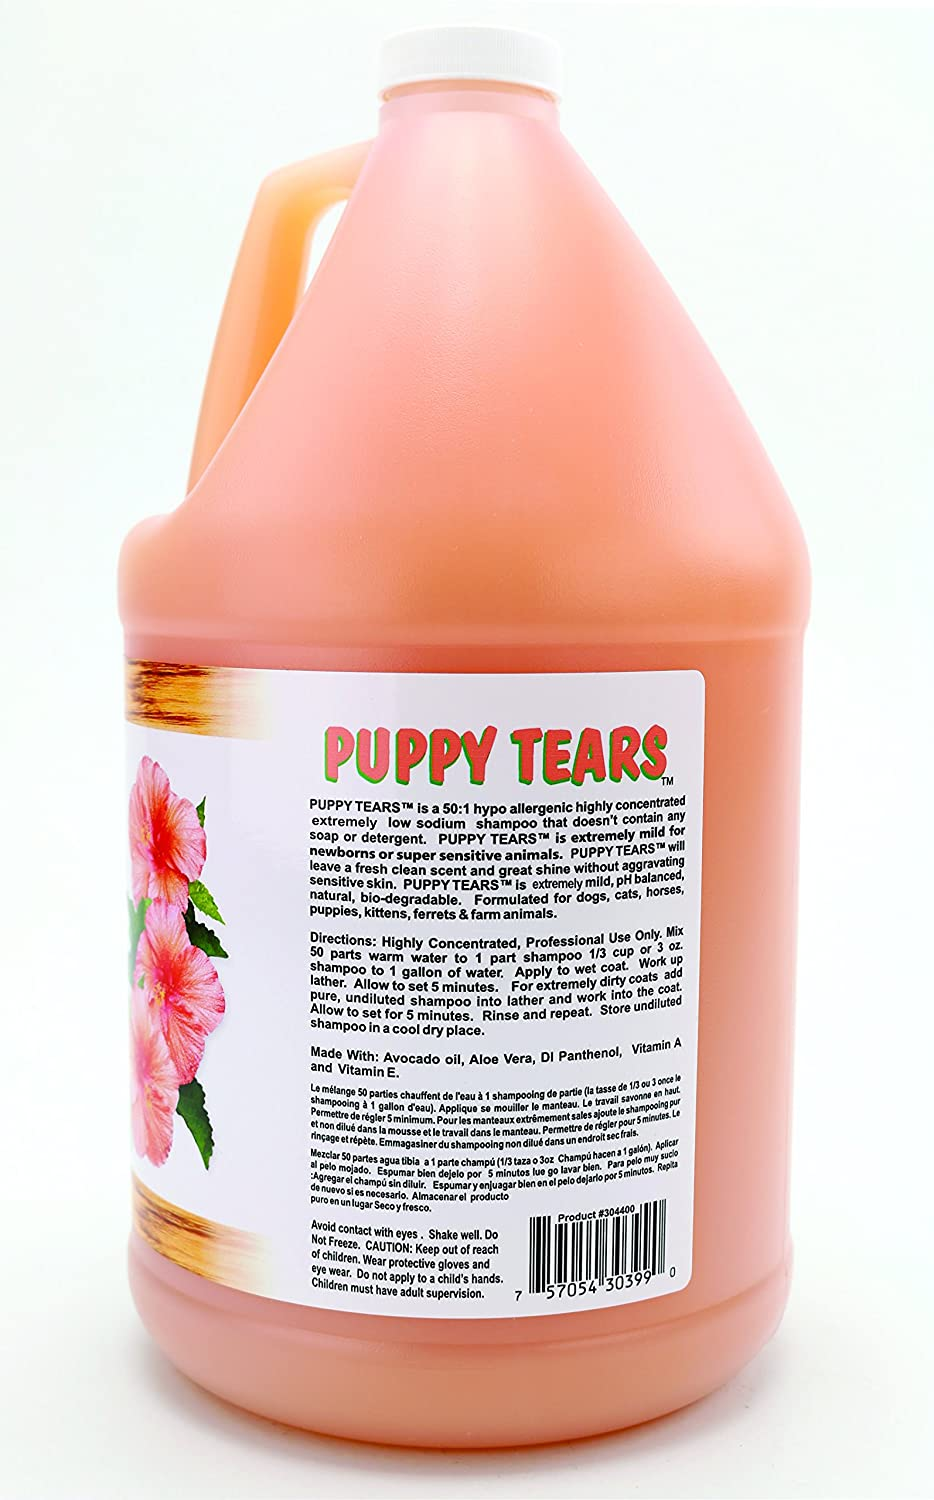 Pet Tearless Shampoos : Amazon.com: Kelco 50:1 Puppy Tears Shampoo Gallon